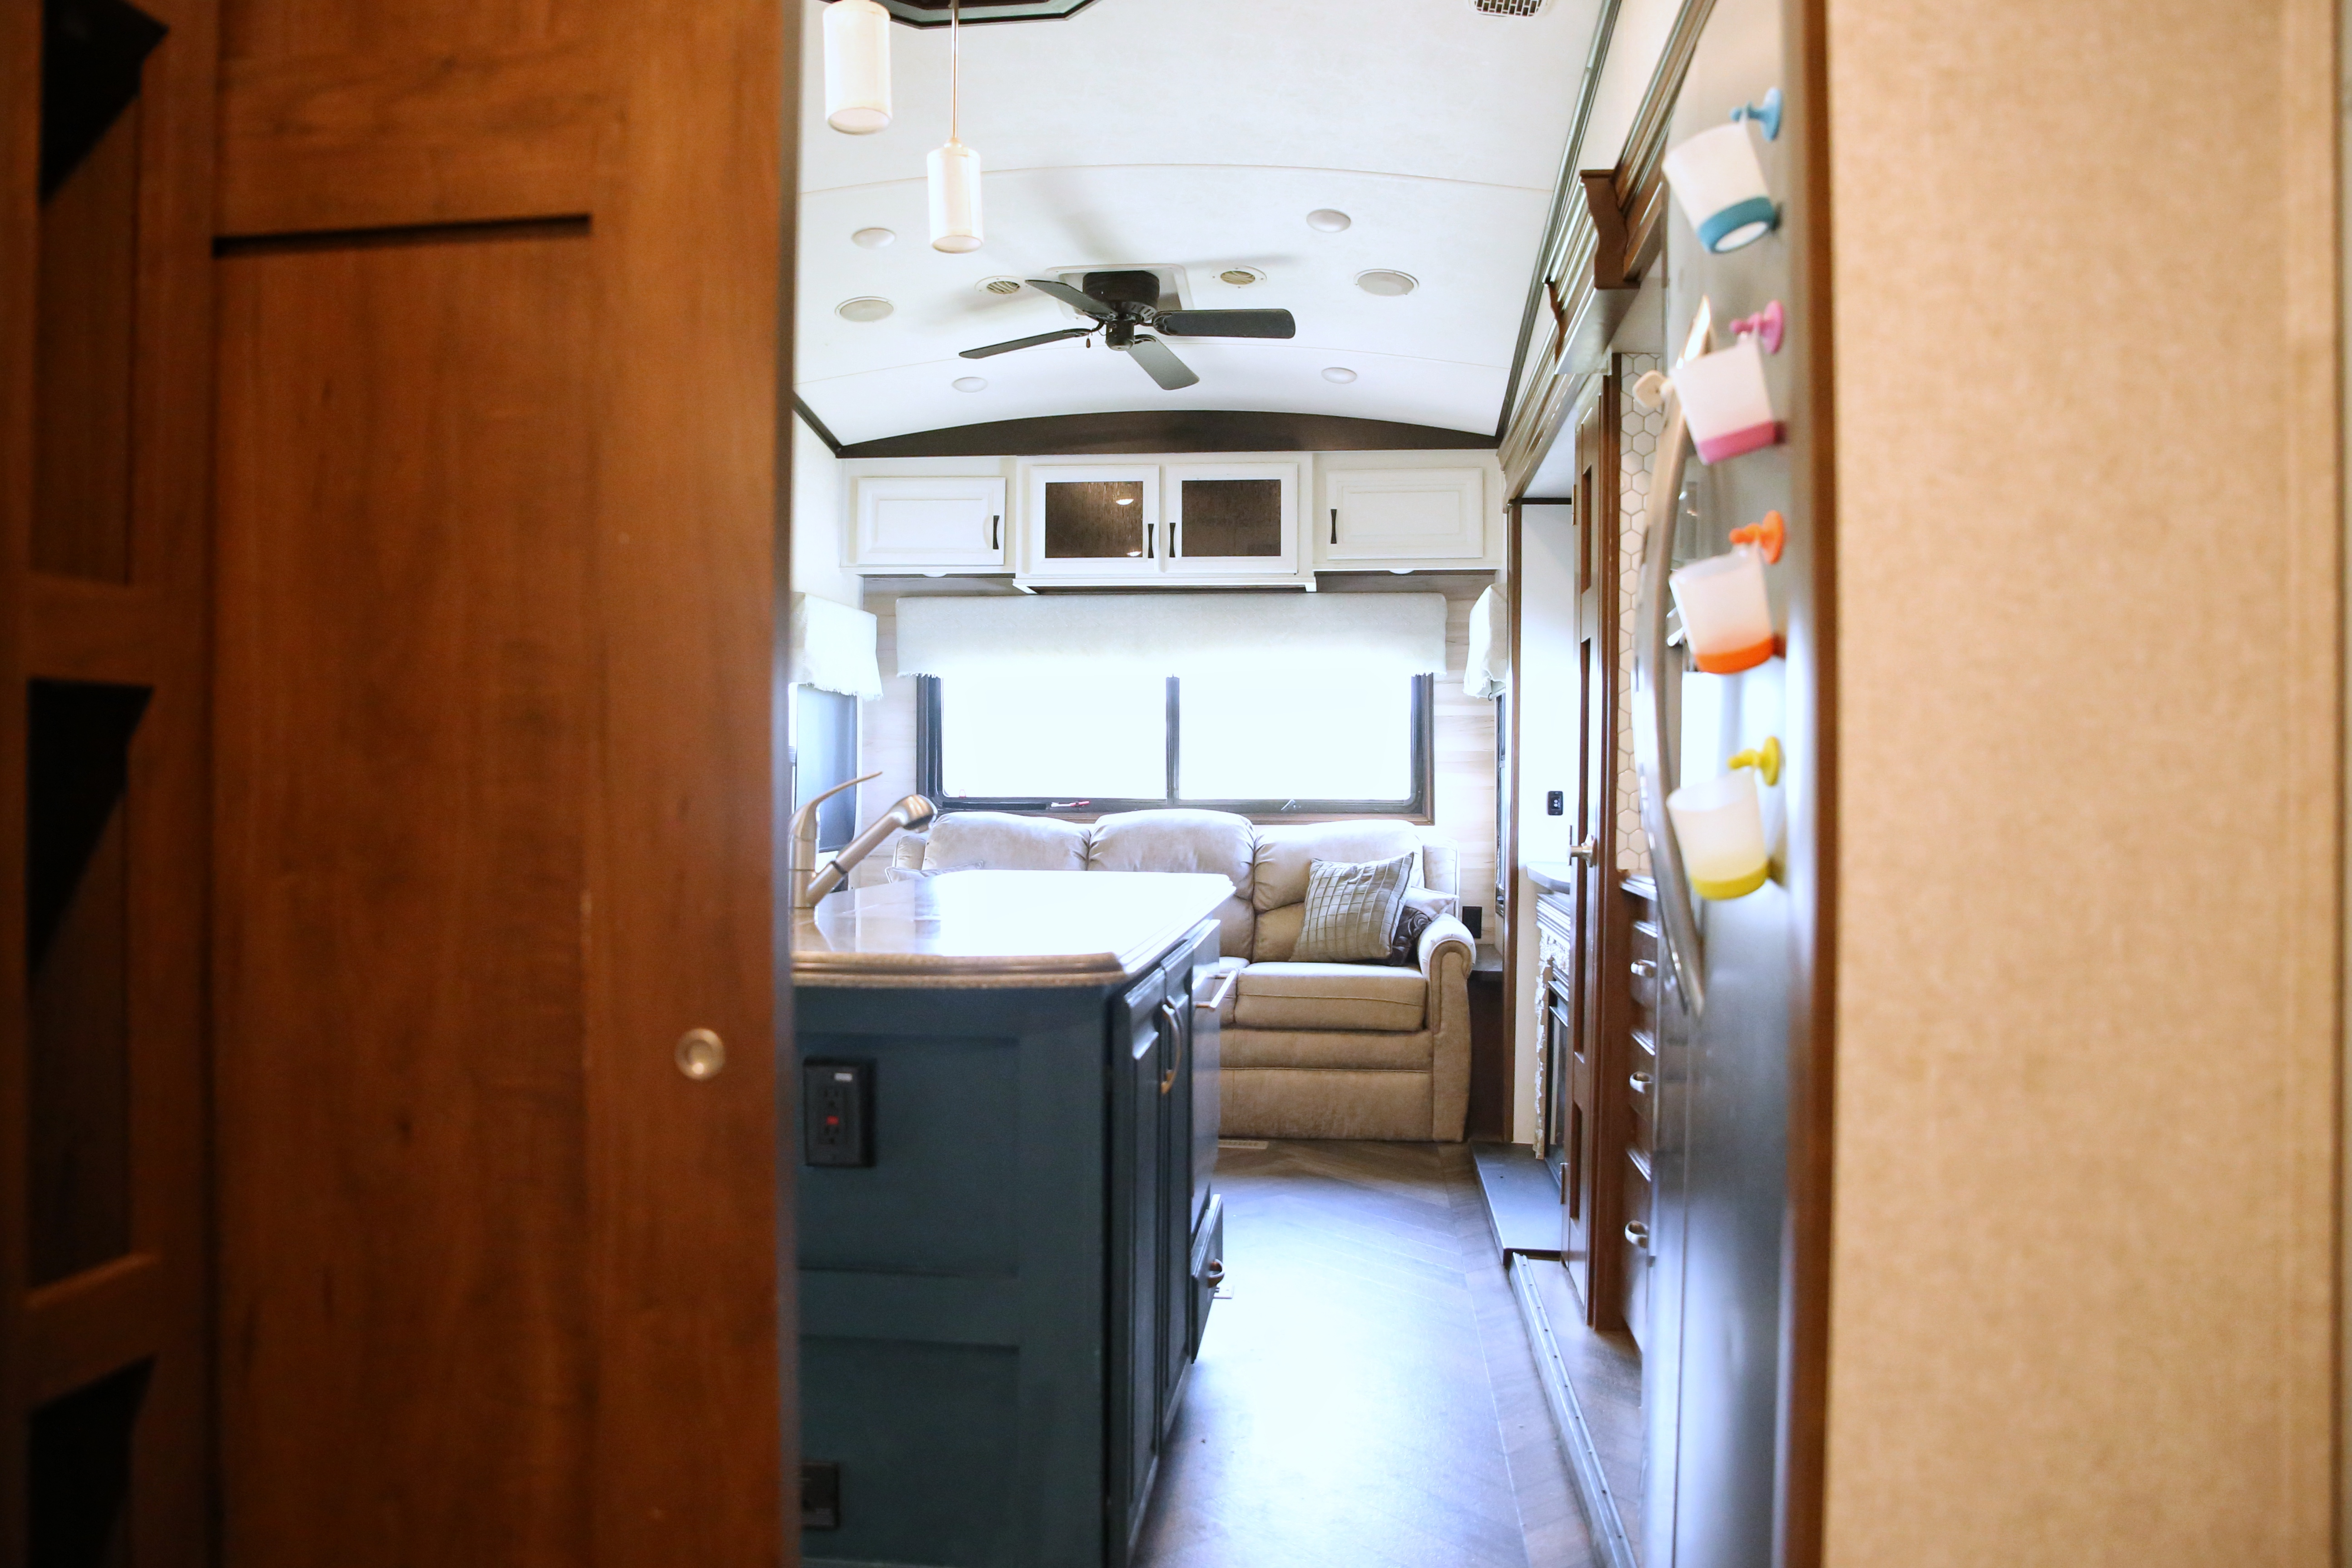 Our Jayco Rv Is For Sale Jill Krause